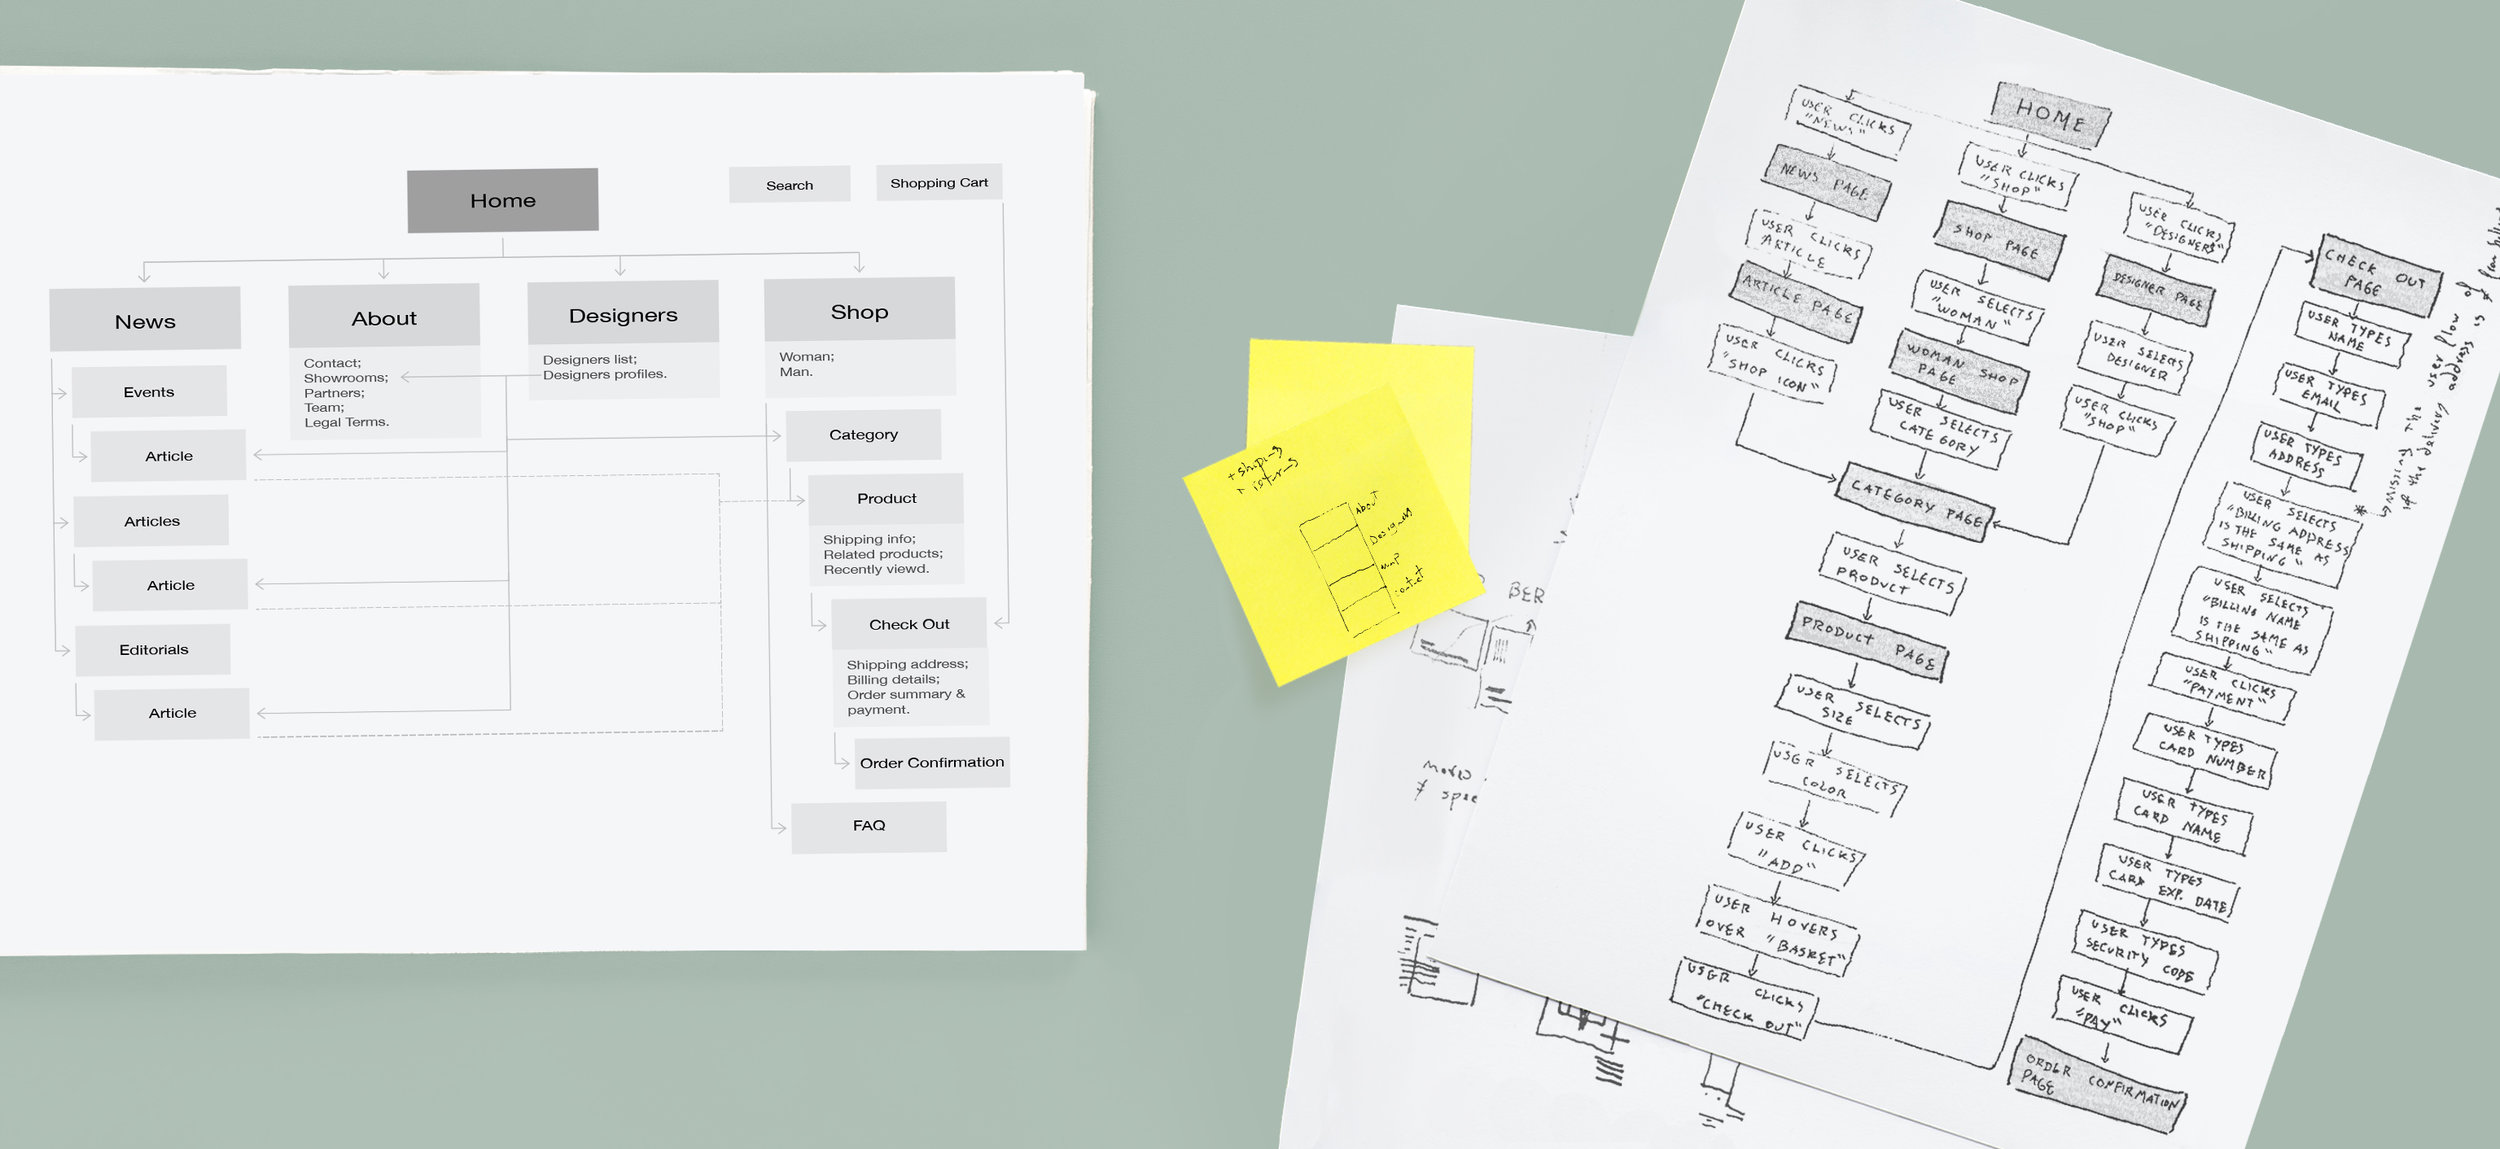 On the left: sitemap. On the right: shop & check out user-flow exploration.